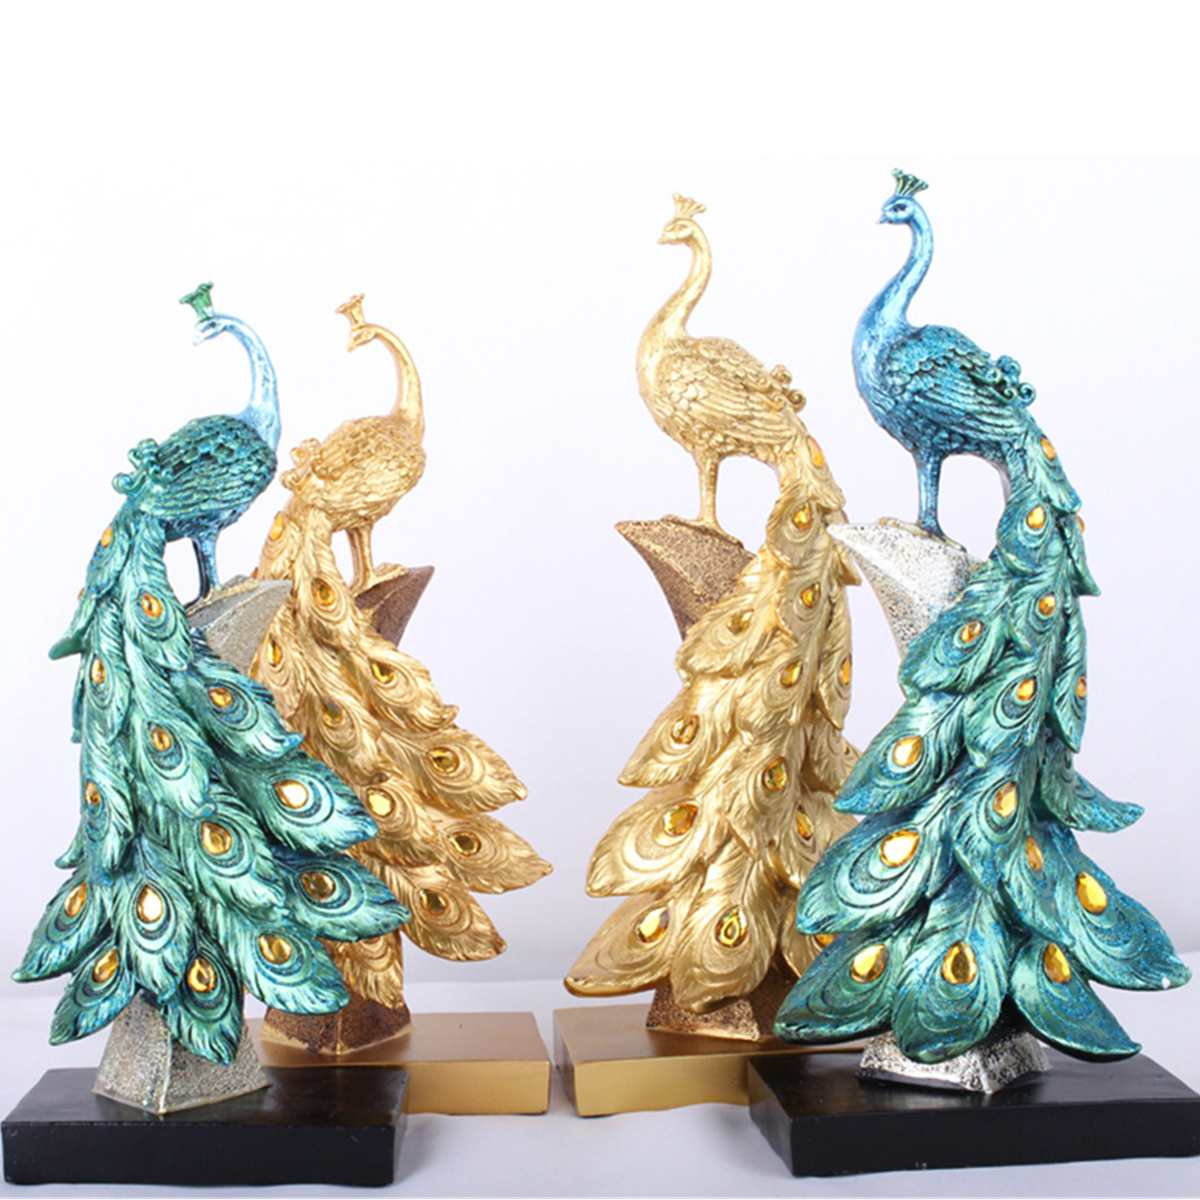 Exotic Peacock Resin Decoration Crafts Desktop Ornament Decorations Figurine Miniatures Statue Sculpture Home Decor